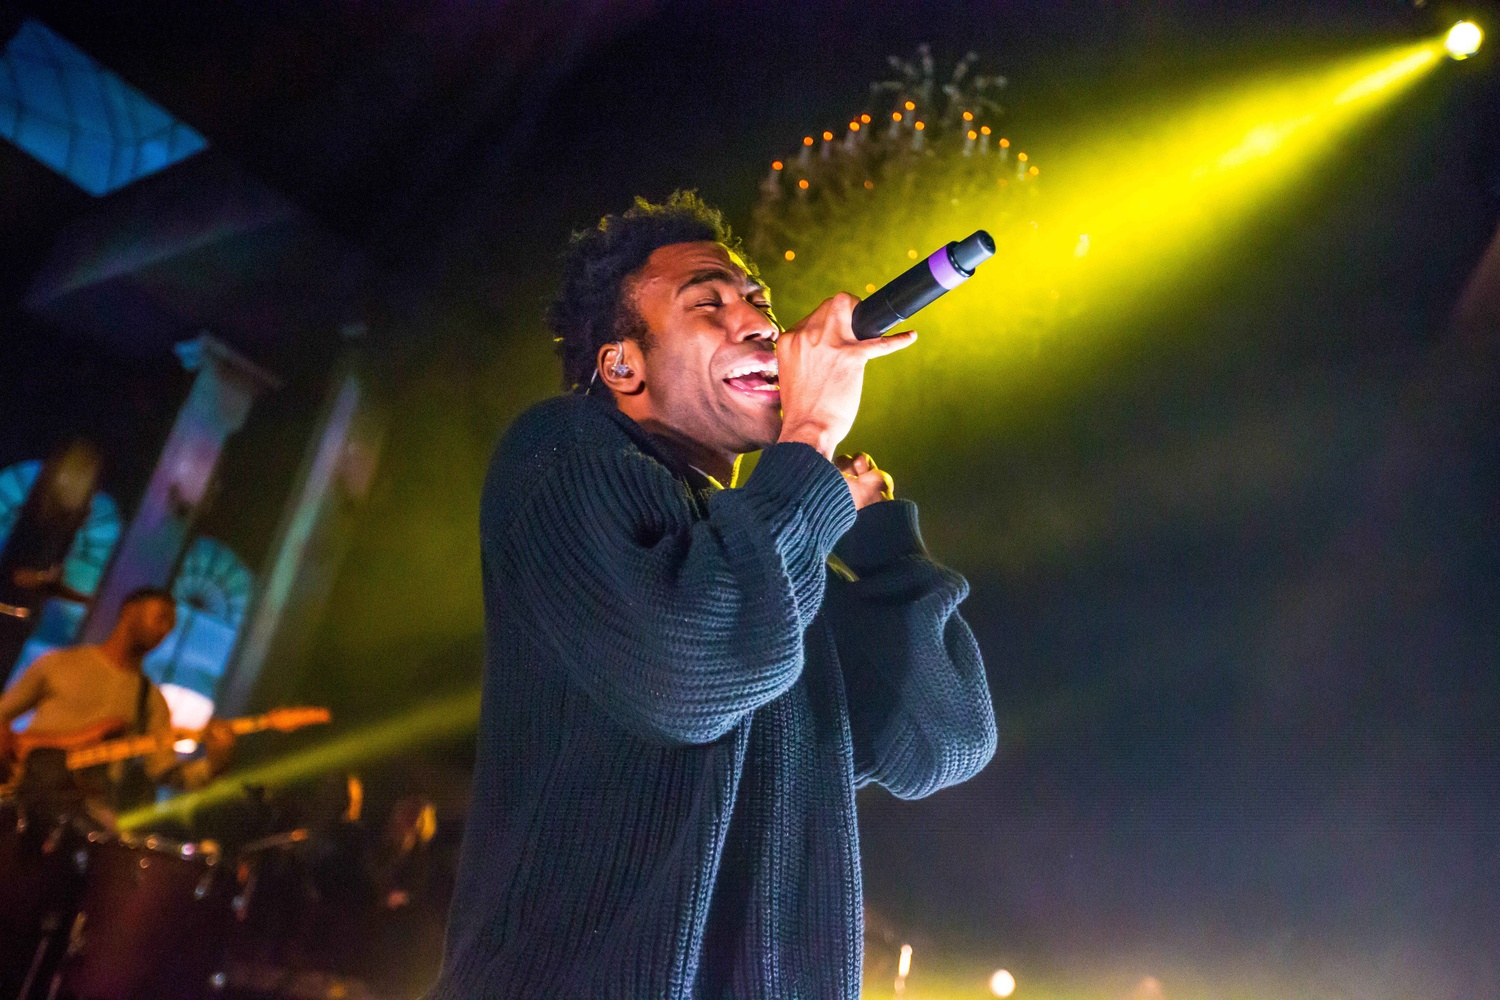 Donald Glover, also known as Childish Gambino, performs on his Deep Web Tour at The Fillmore Theatre in Detroit March 2014 Credit: Courtesy of MCT